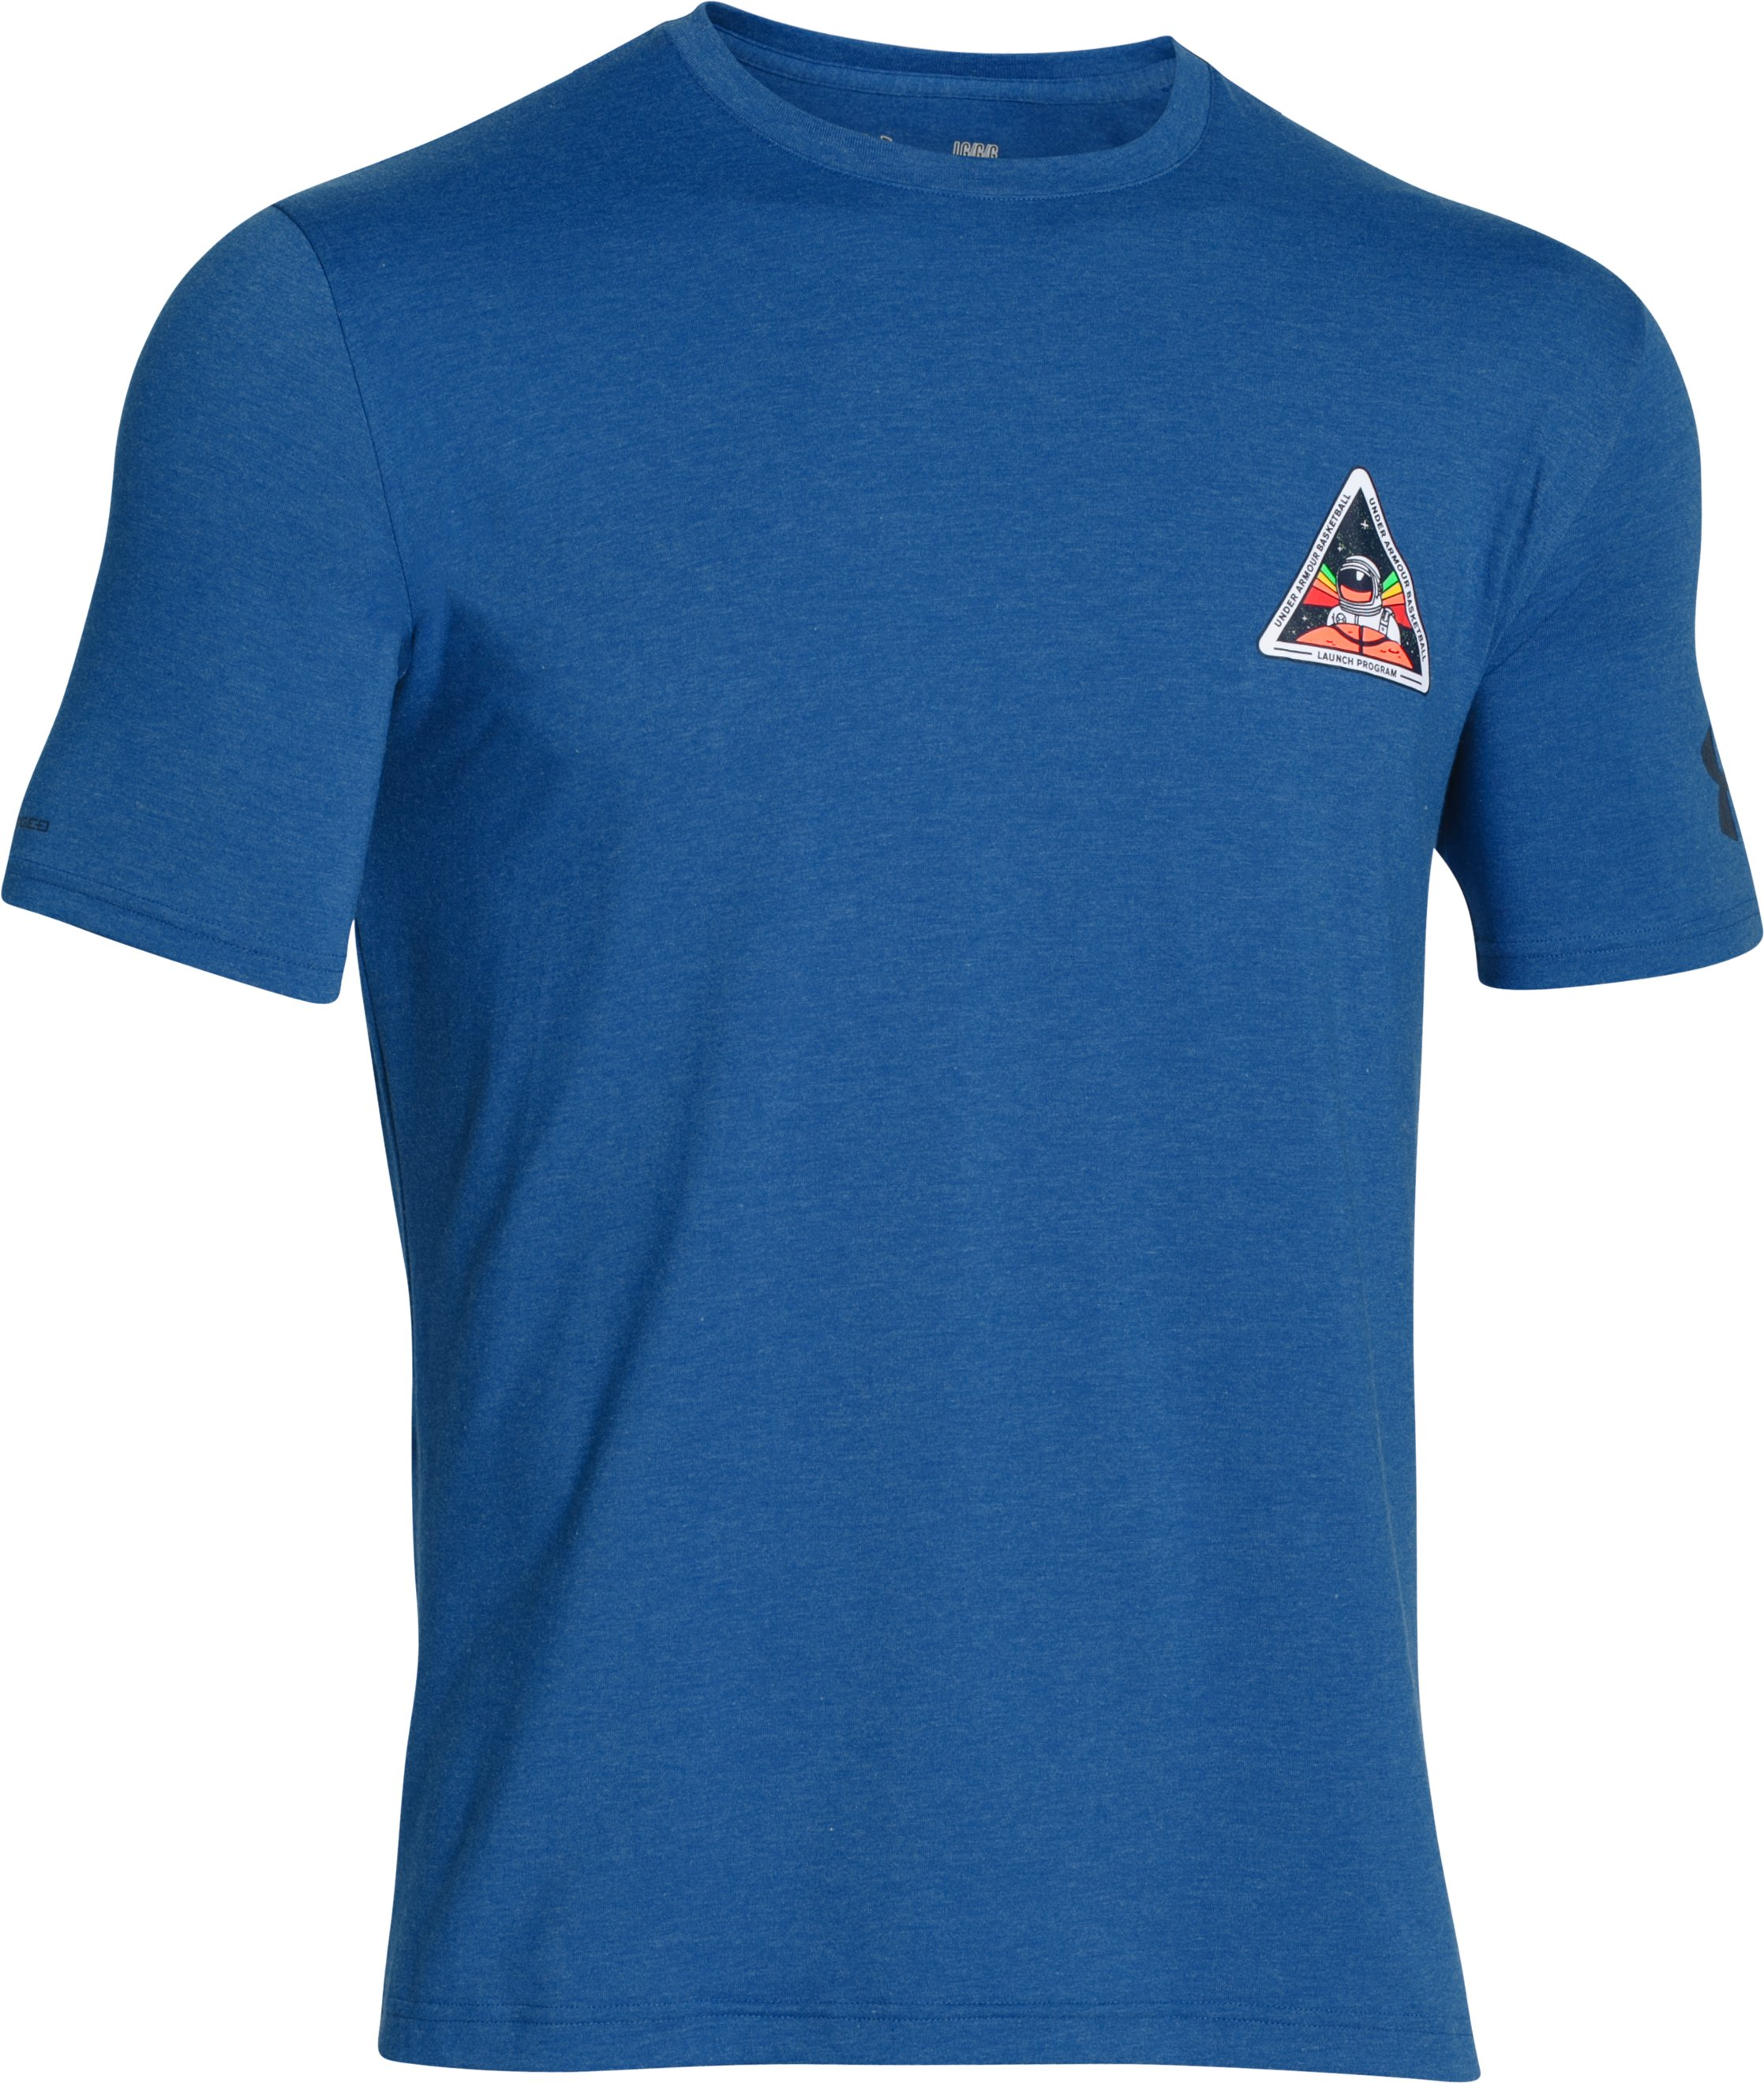 Men's UA Launch Program T-Shirt, Royal,